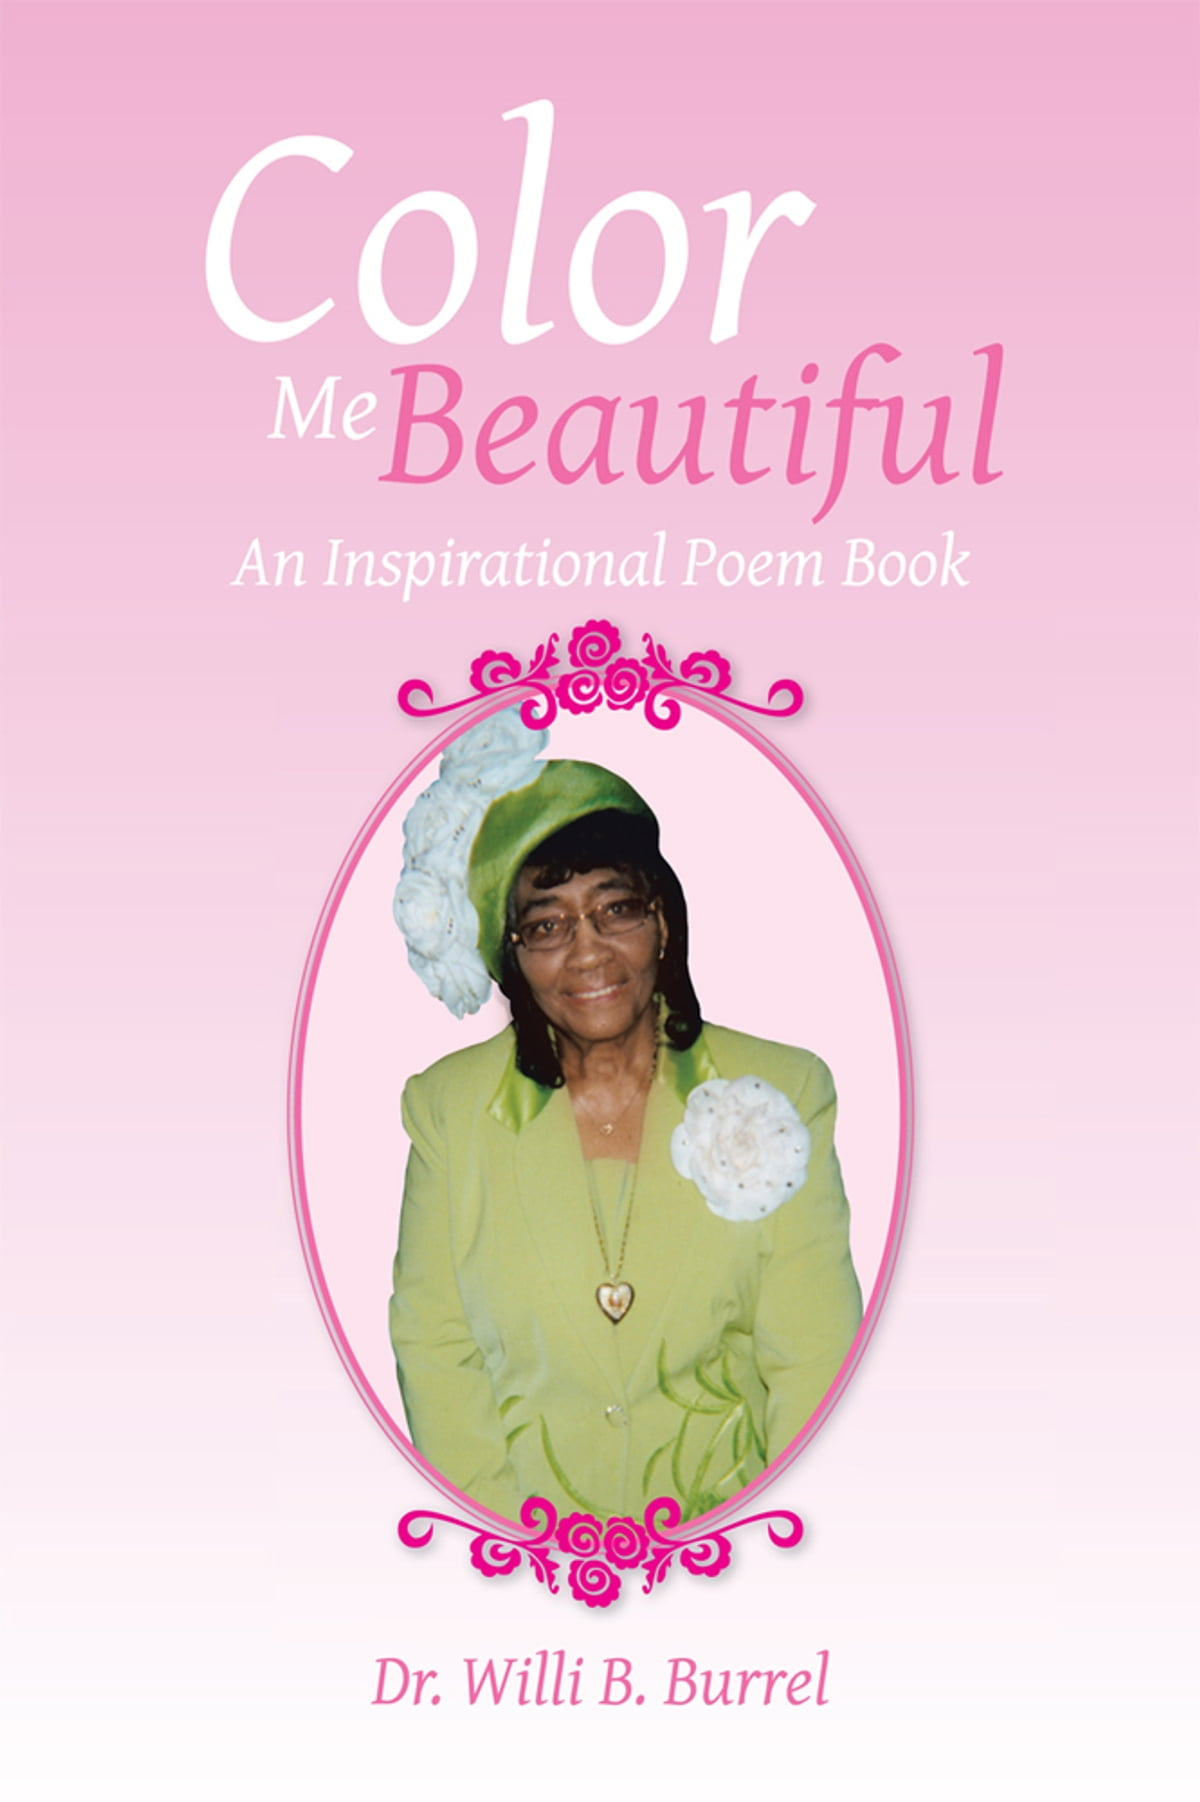 color me beautiful ebook by dr willi b burrel 9781483630144 rakuten kobo - Color Me Beautiful Book